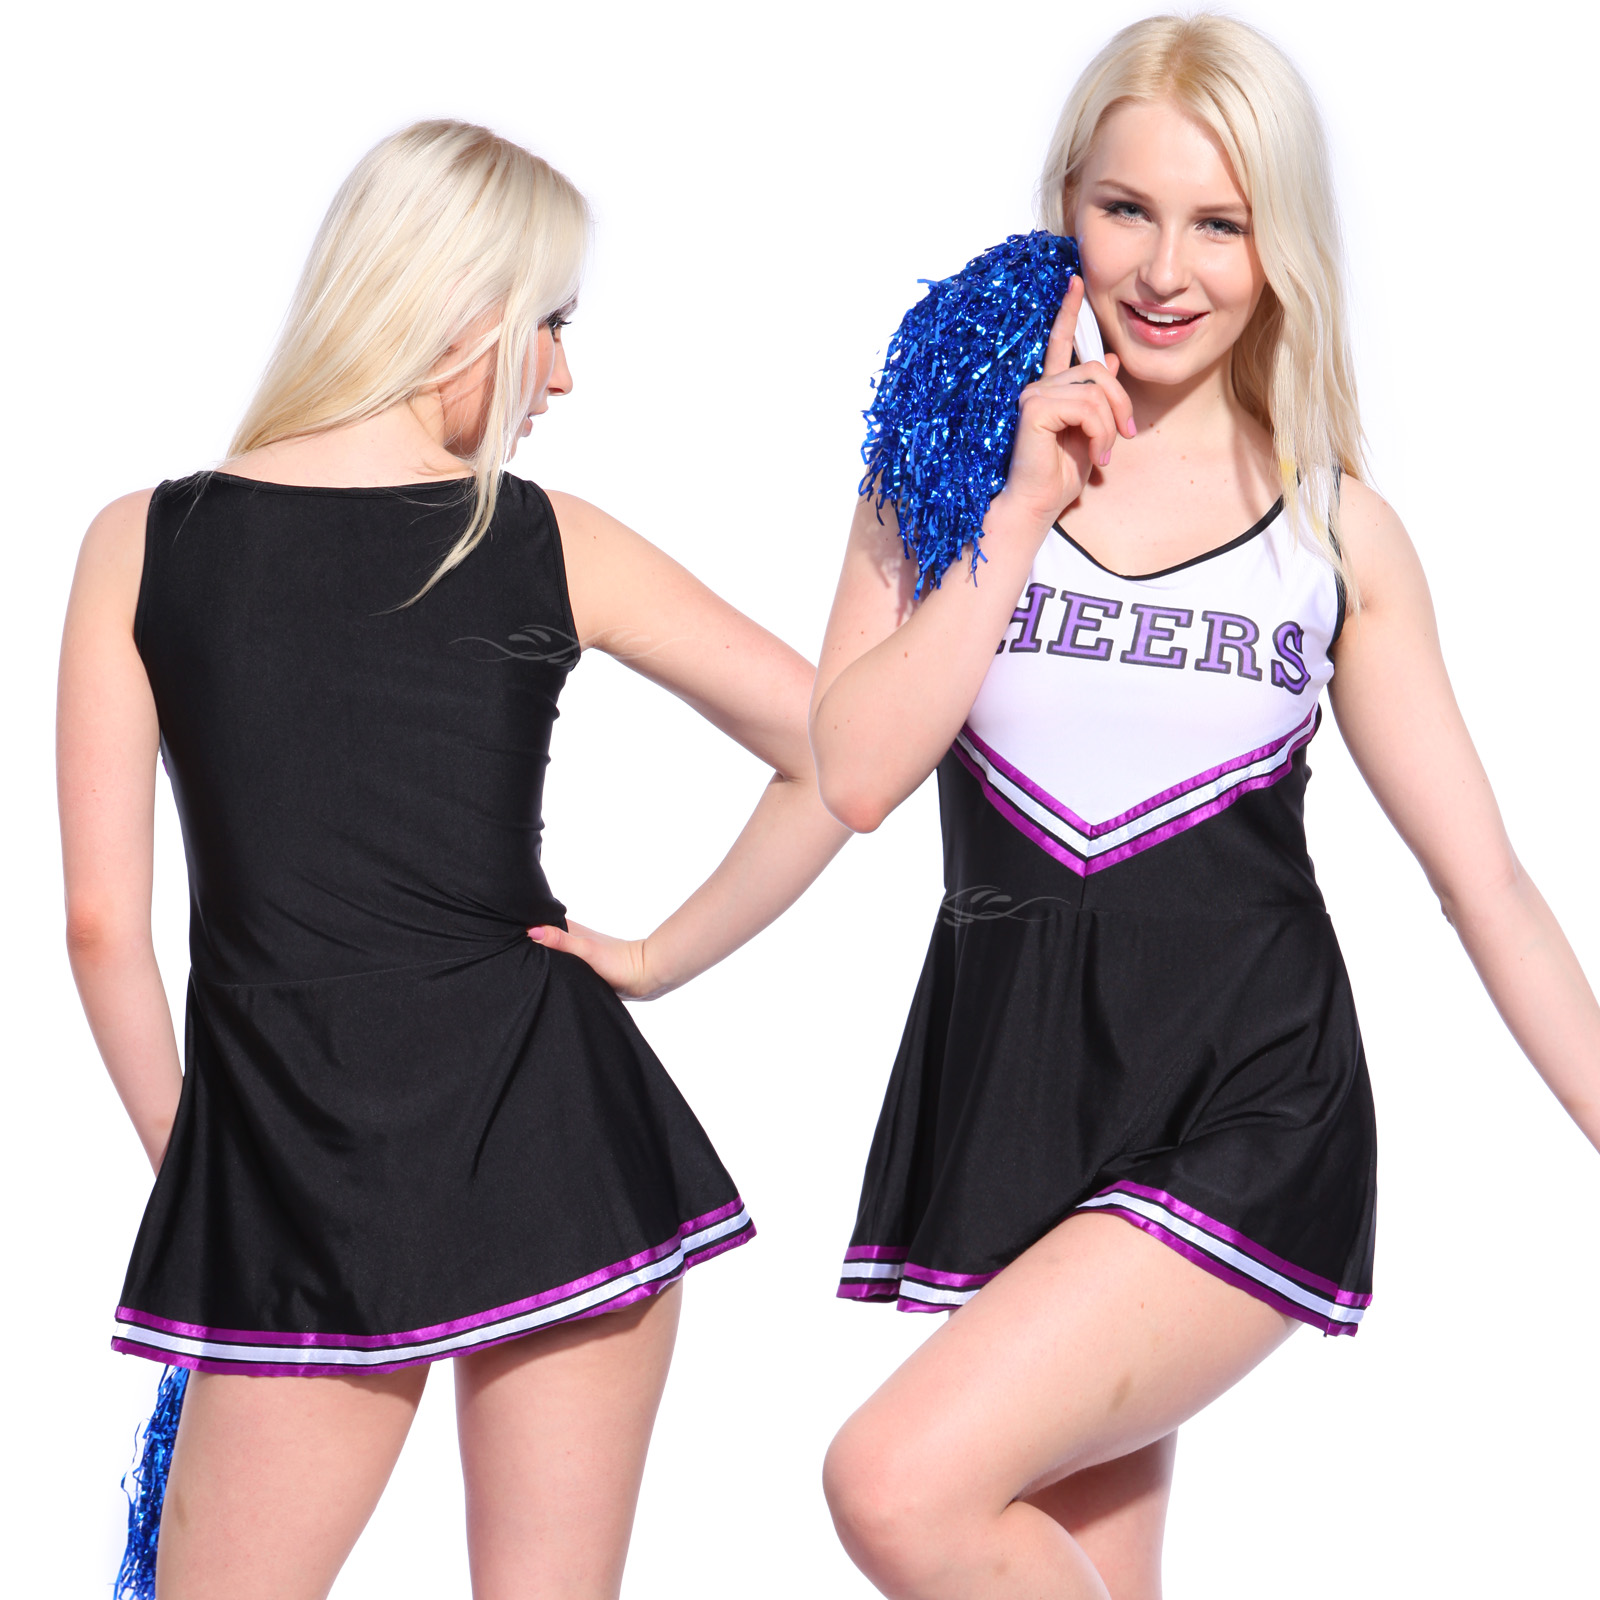 The hot teen cheer babes not absolutely